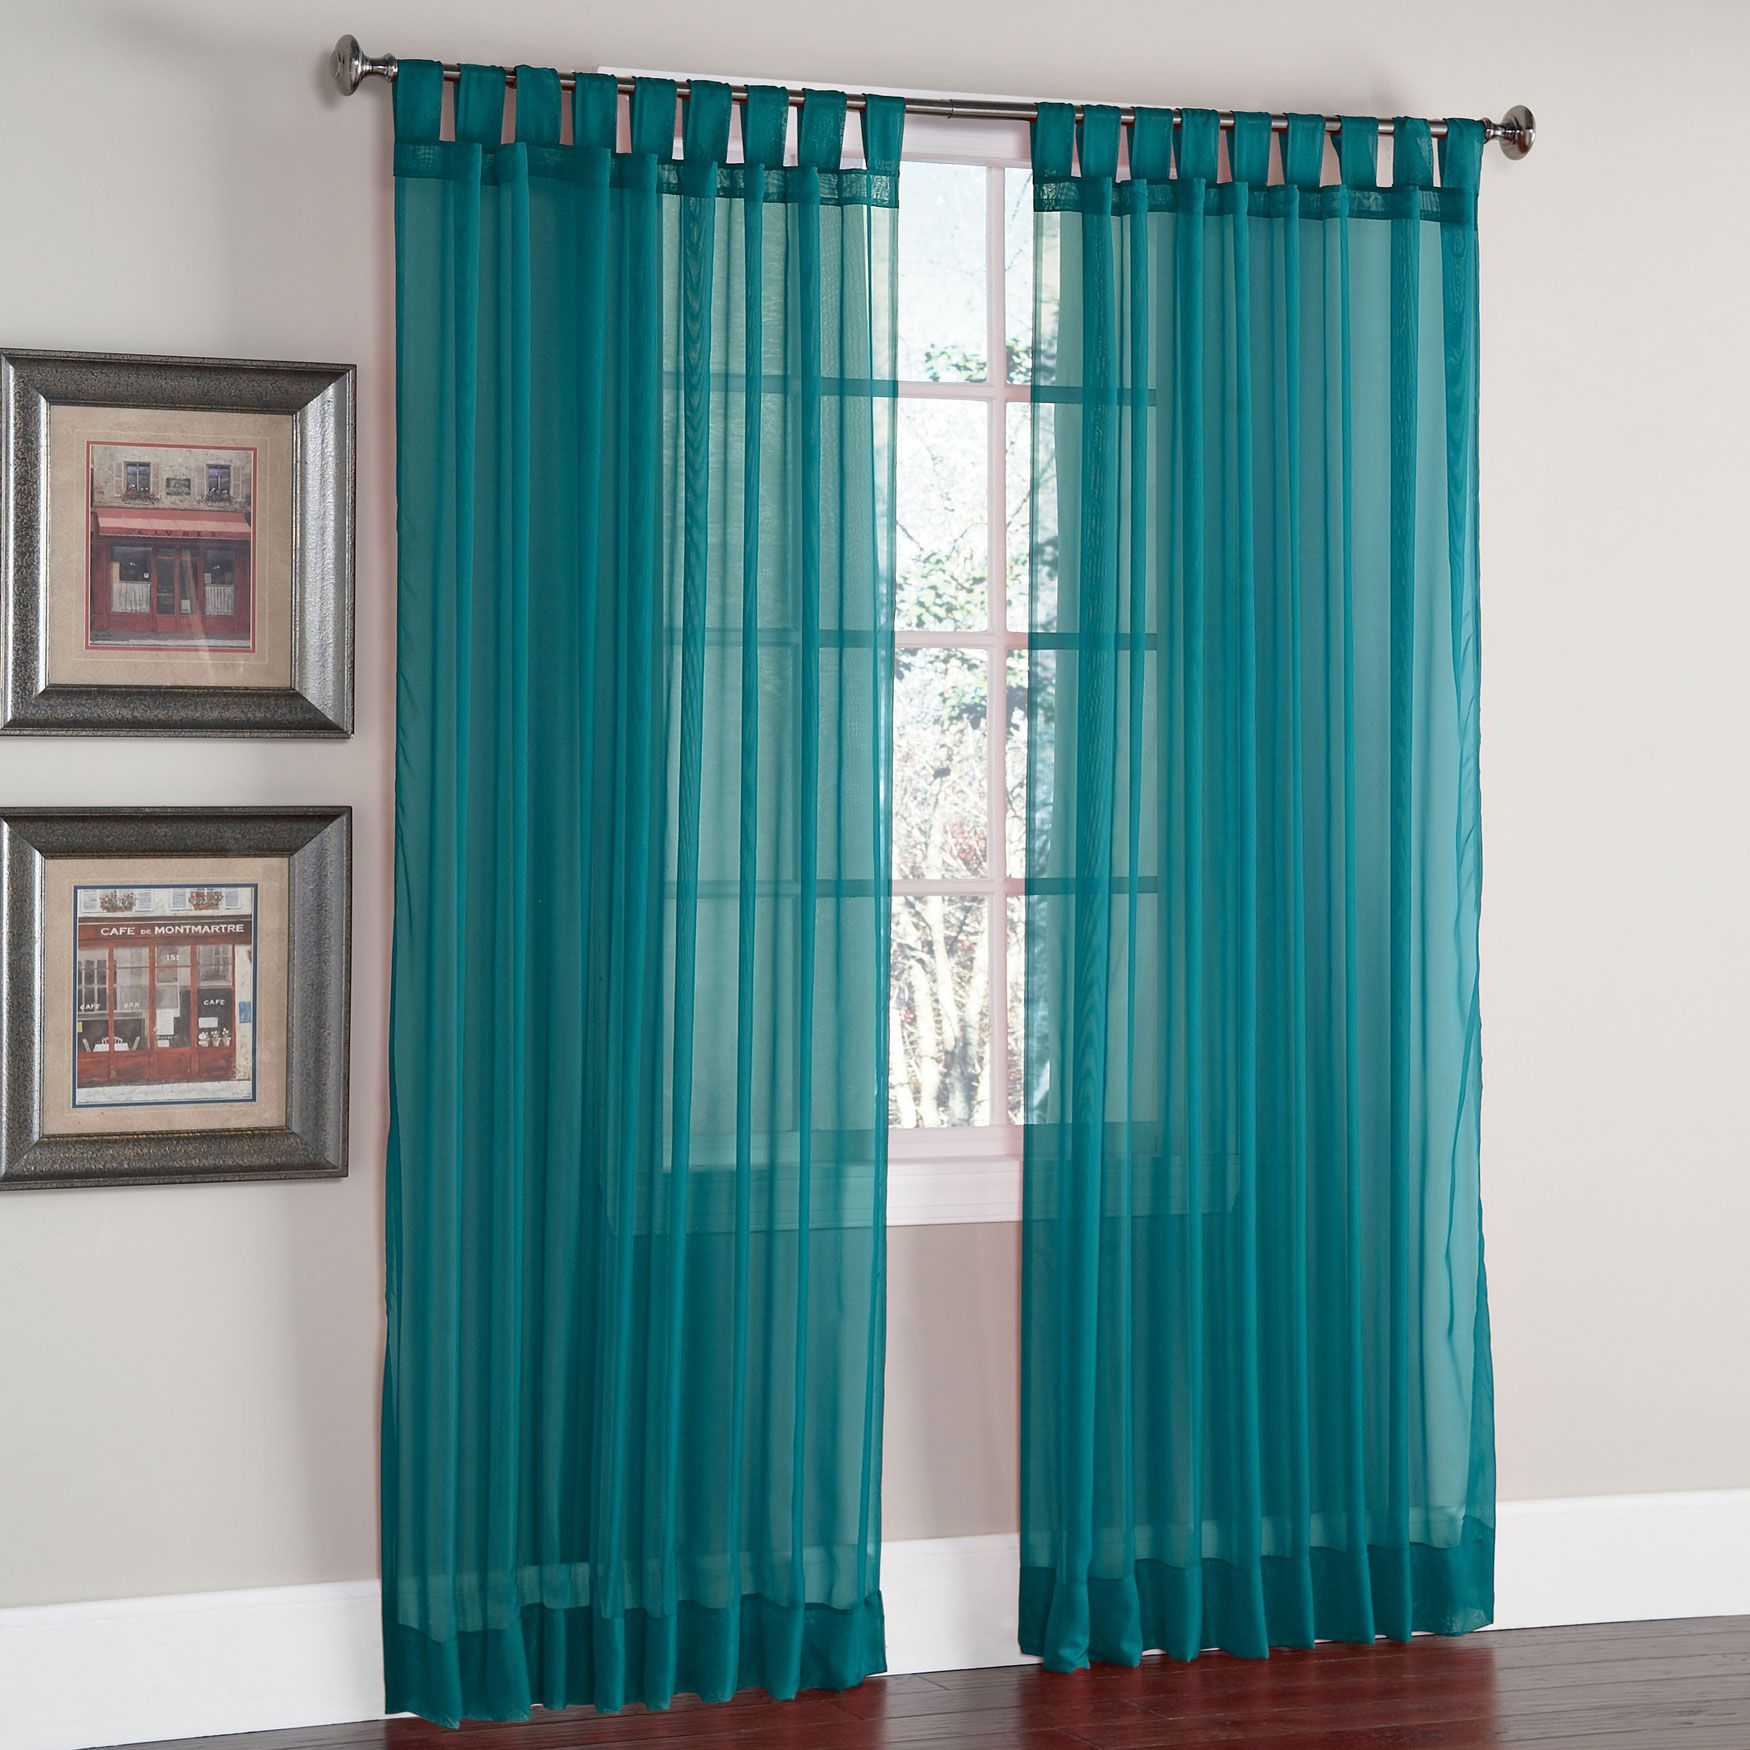 panel unique and full wide dark grey canada with extra trellis awesome silver design size rod curtain white curtains of teal blackout bedroom pocket purple moroccan